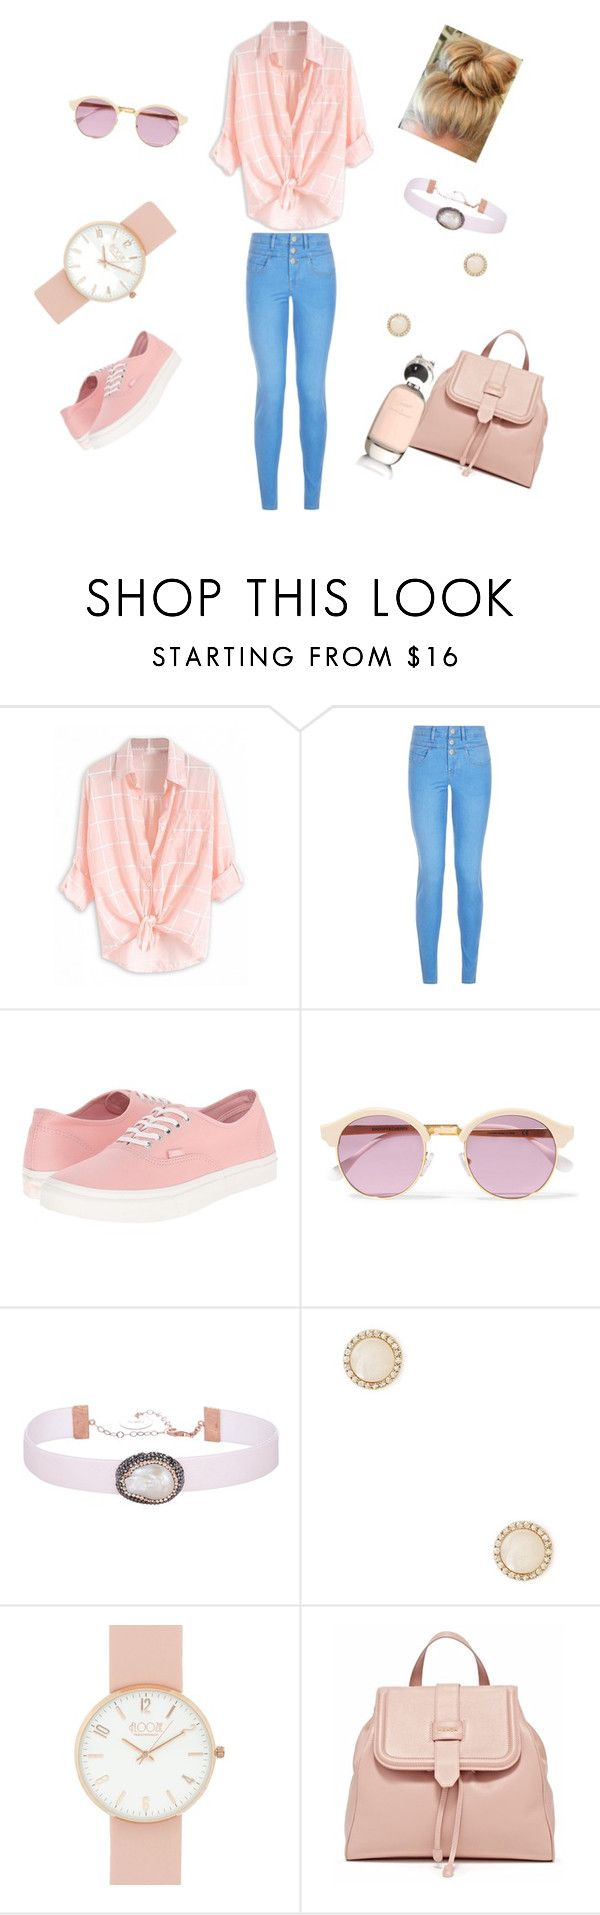 """Very casual Look"" by fashion-1933 ❤ liked on Polyvore featuring New Look, Vans, Sheriff&Cherry, Soru Jewellery, Forever 21 and Comme des Garçons"